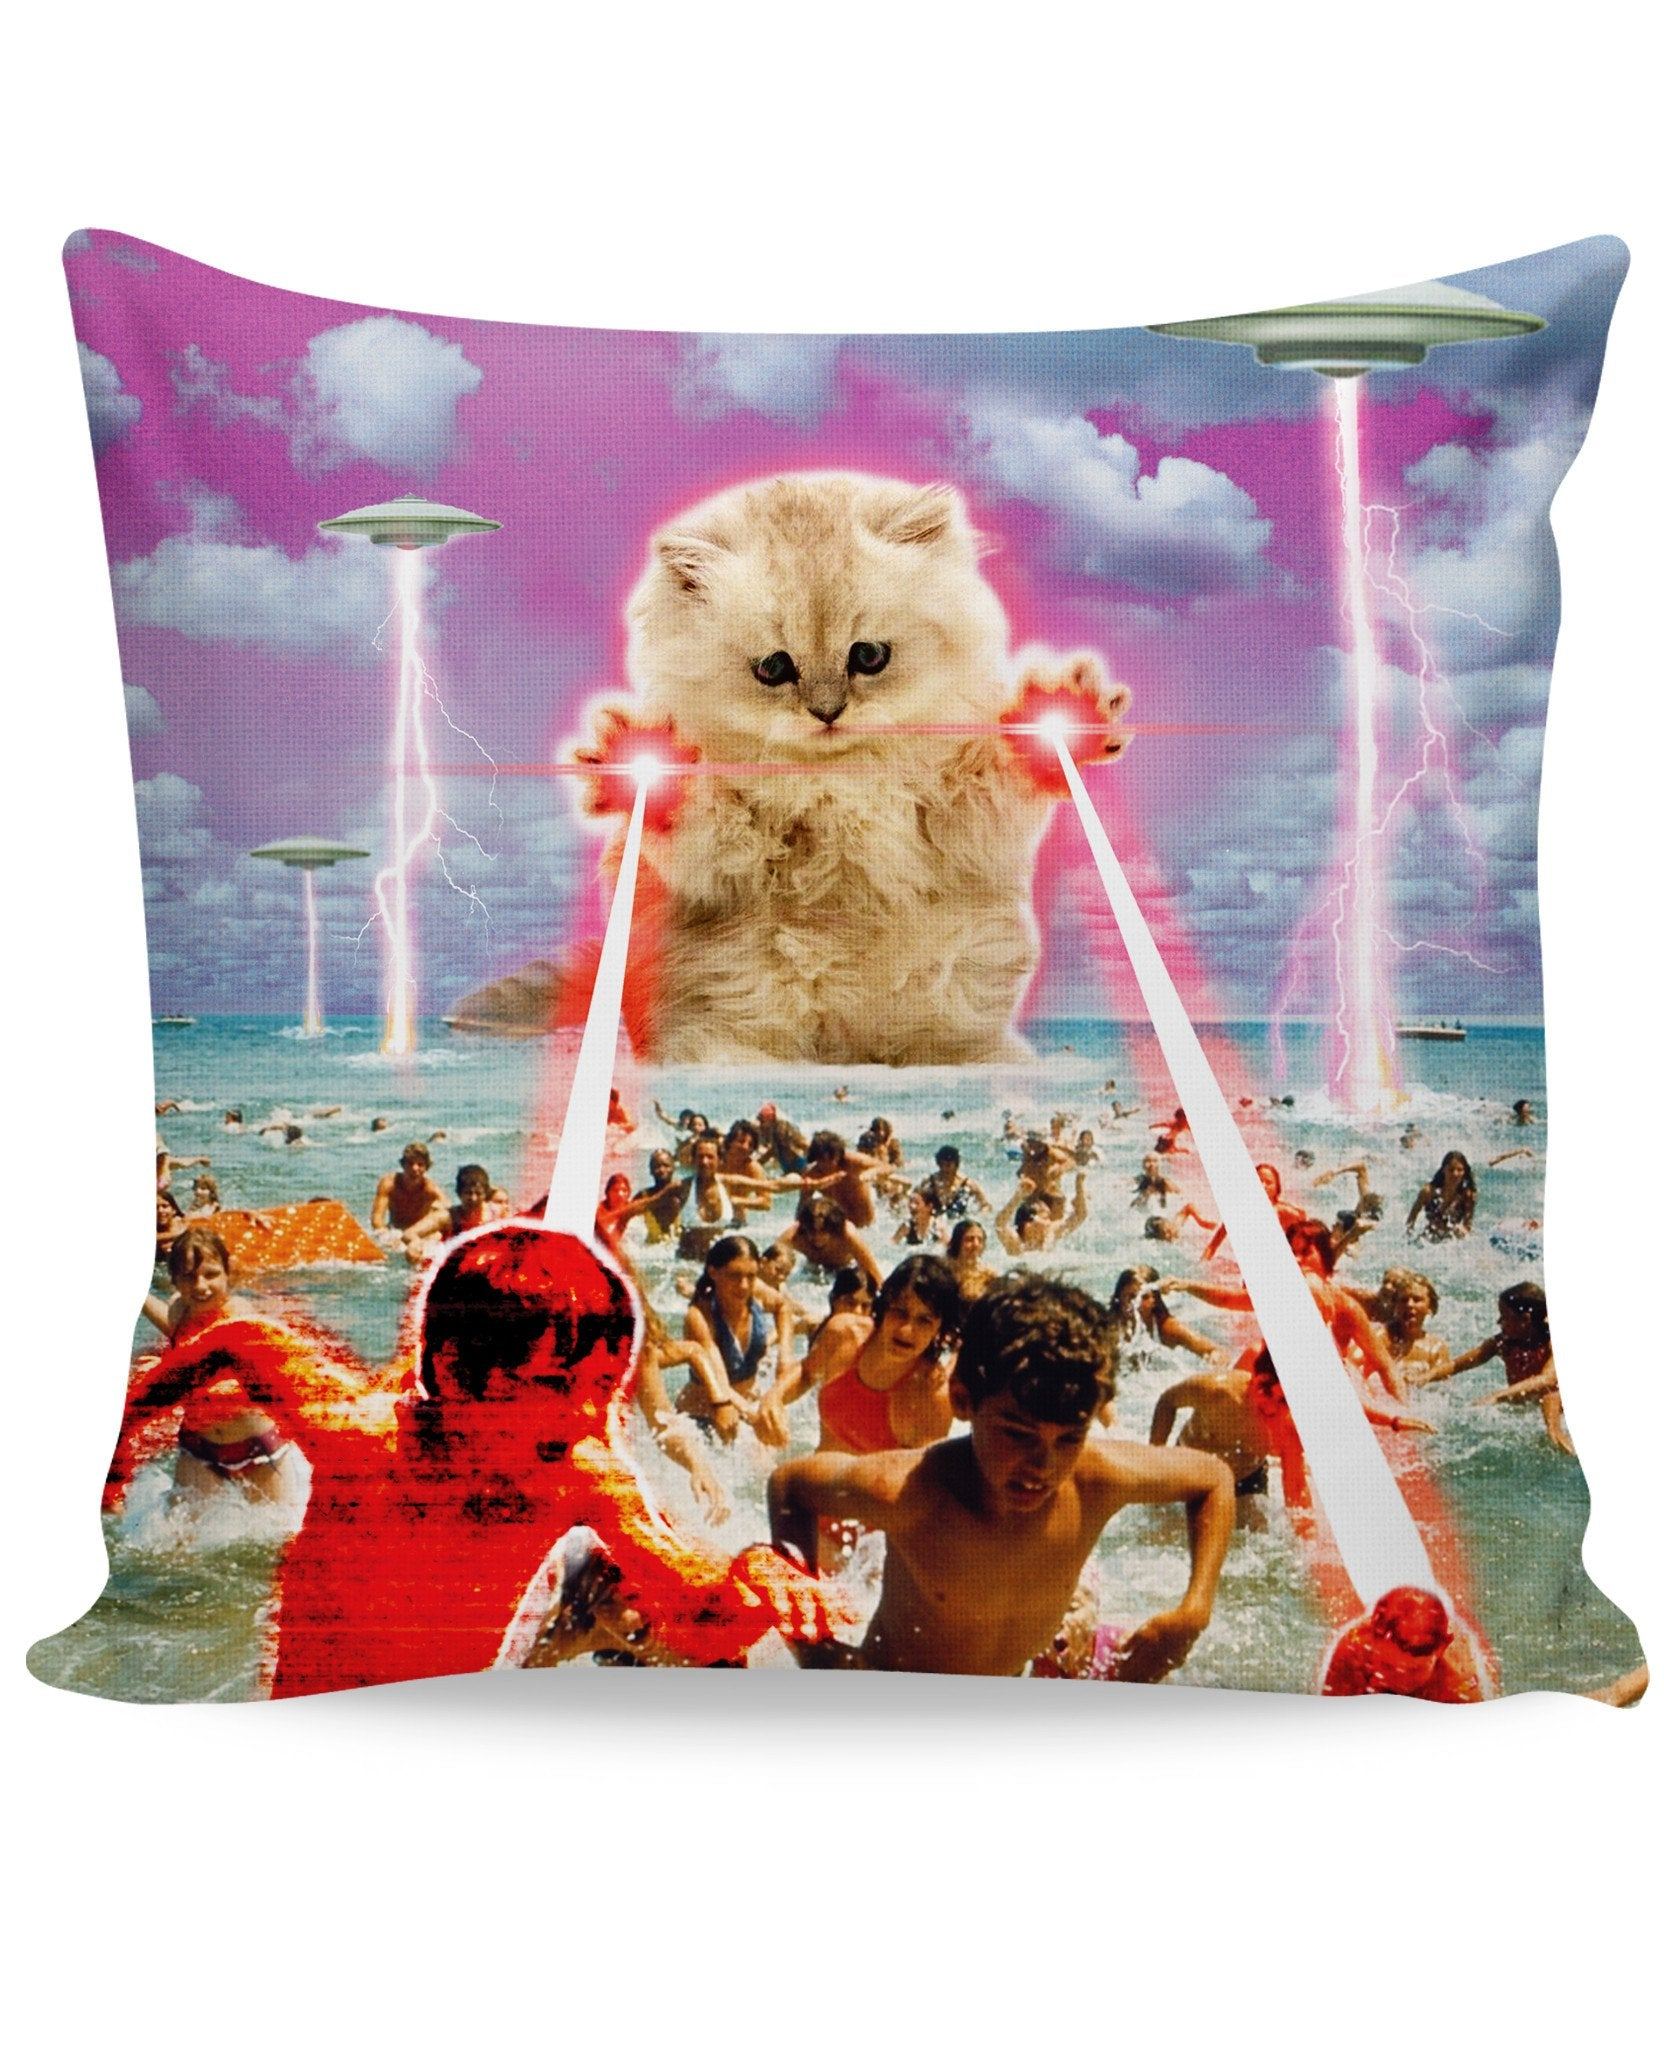 Pleasing The Kitten No One Loved Couch Pillow Andrewgaddart Wooden Chair Designs For Living Room Andrewgaddartcom